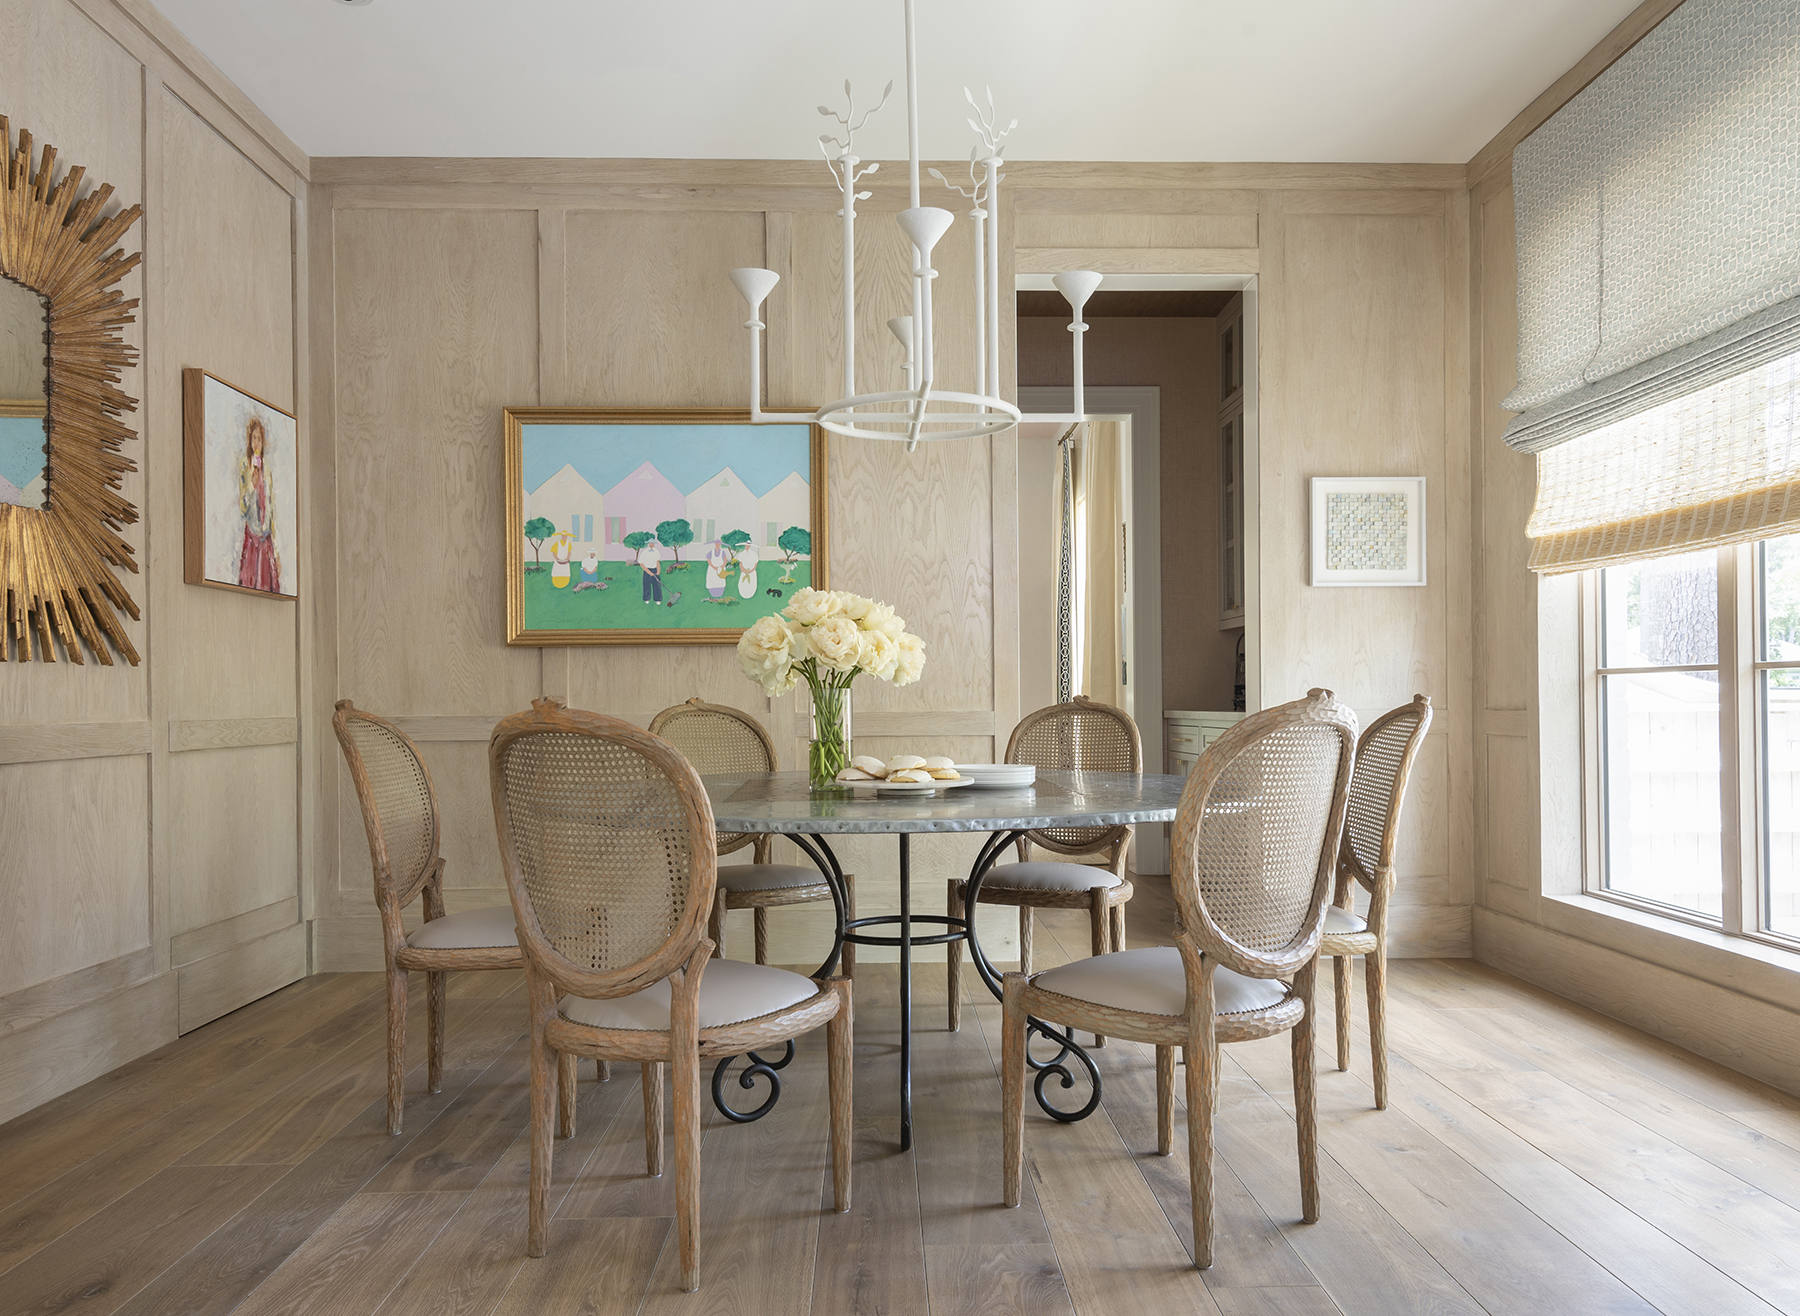 Dining room with bespoke wooden chairs